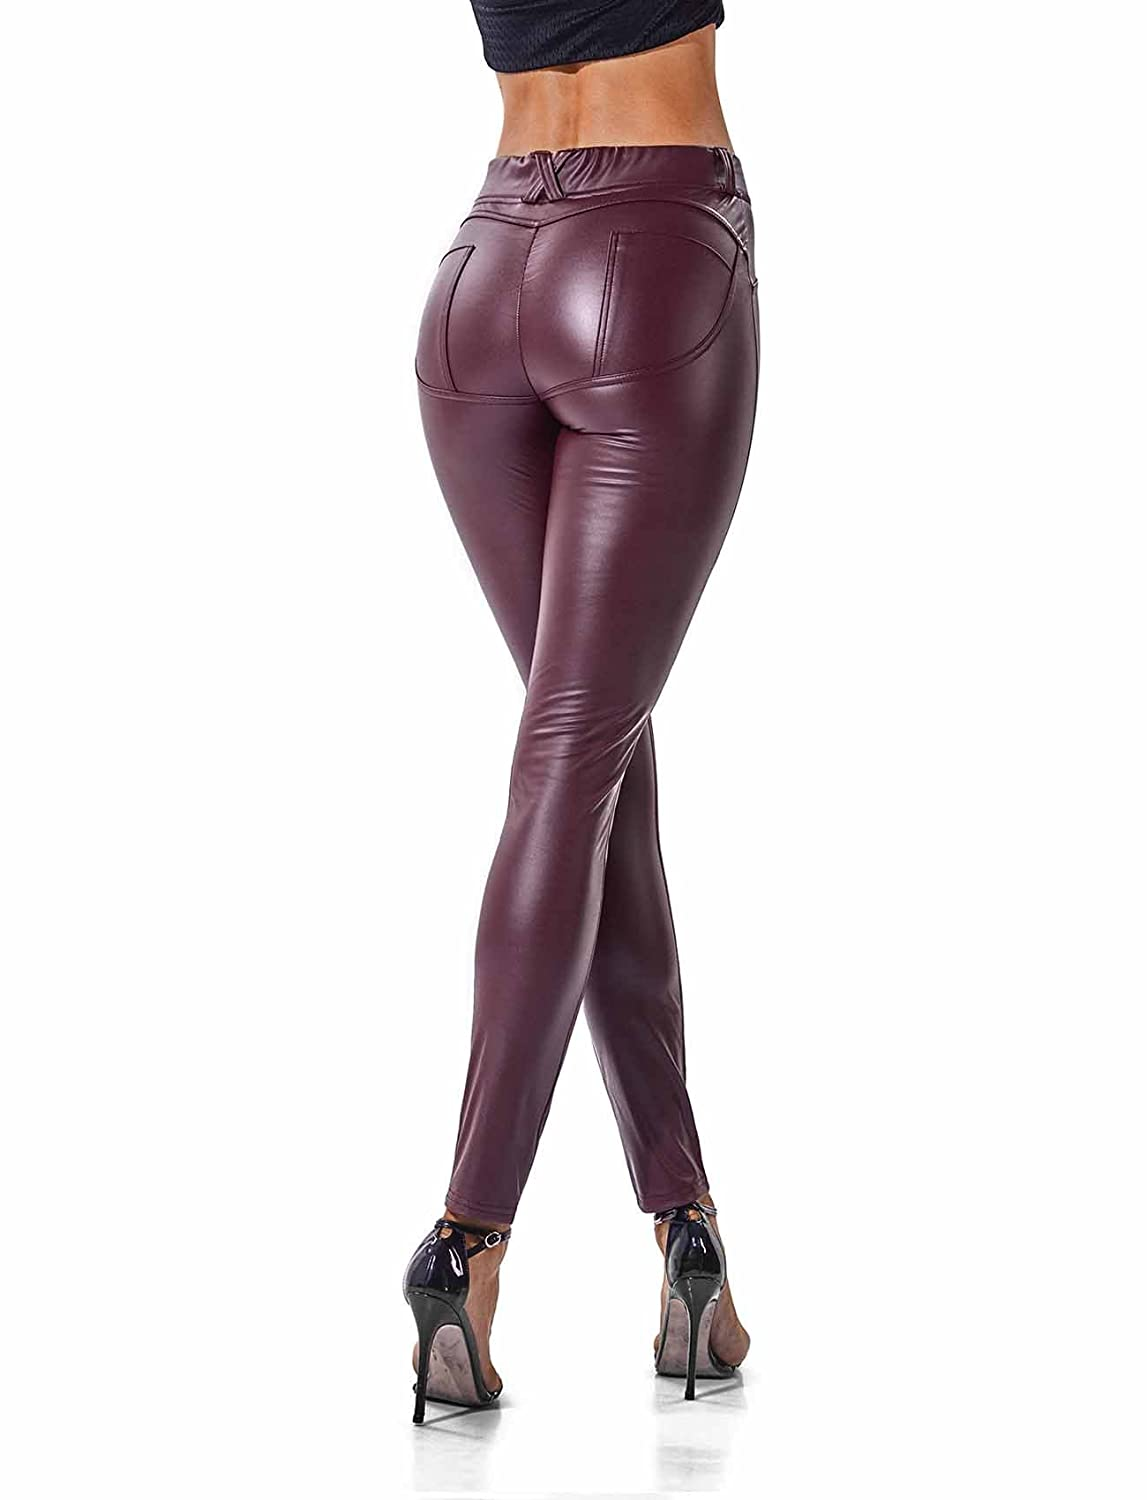 Wine SEASUM Women's Faux Leather Leggings Pants PU Elastic Shaping Hip Push Up Black Sexy Stretchy High Waisted Tights